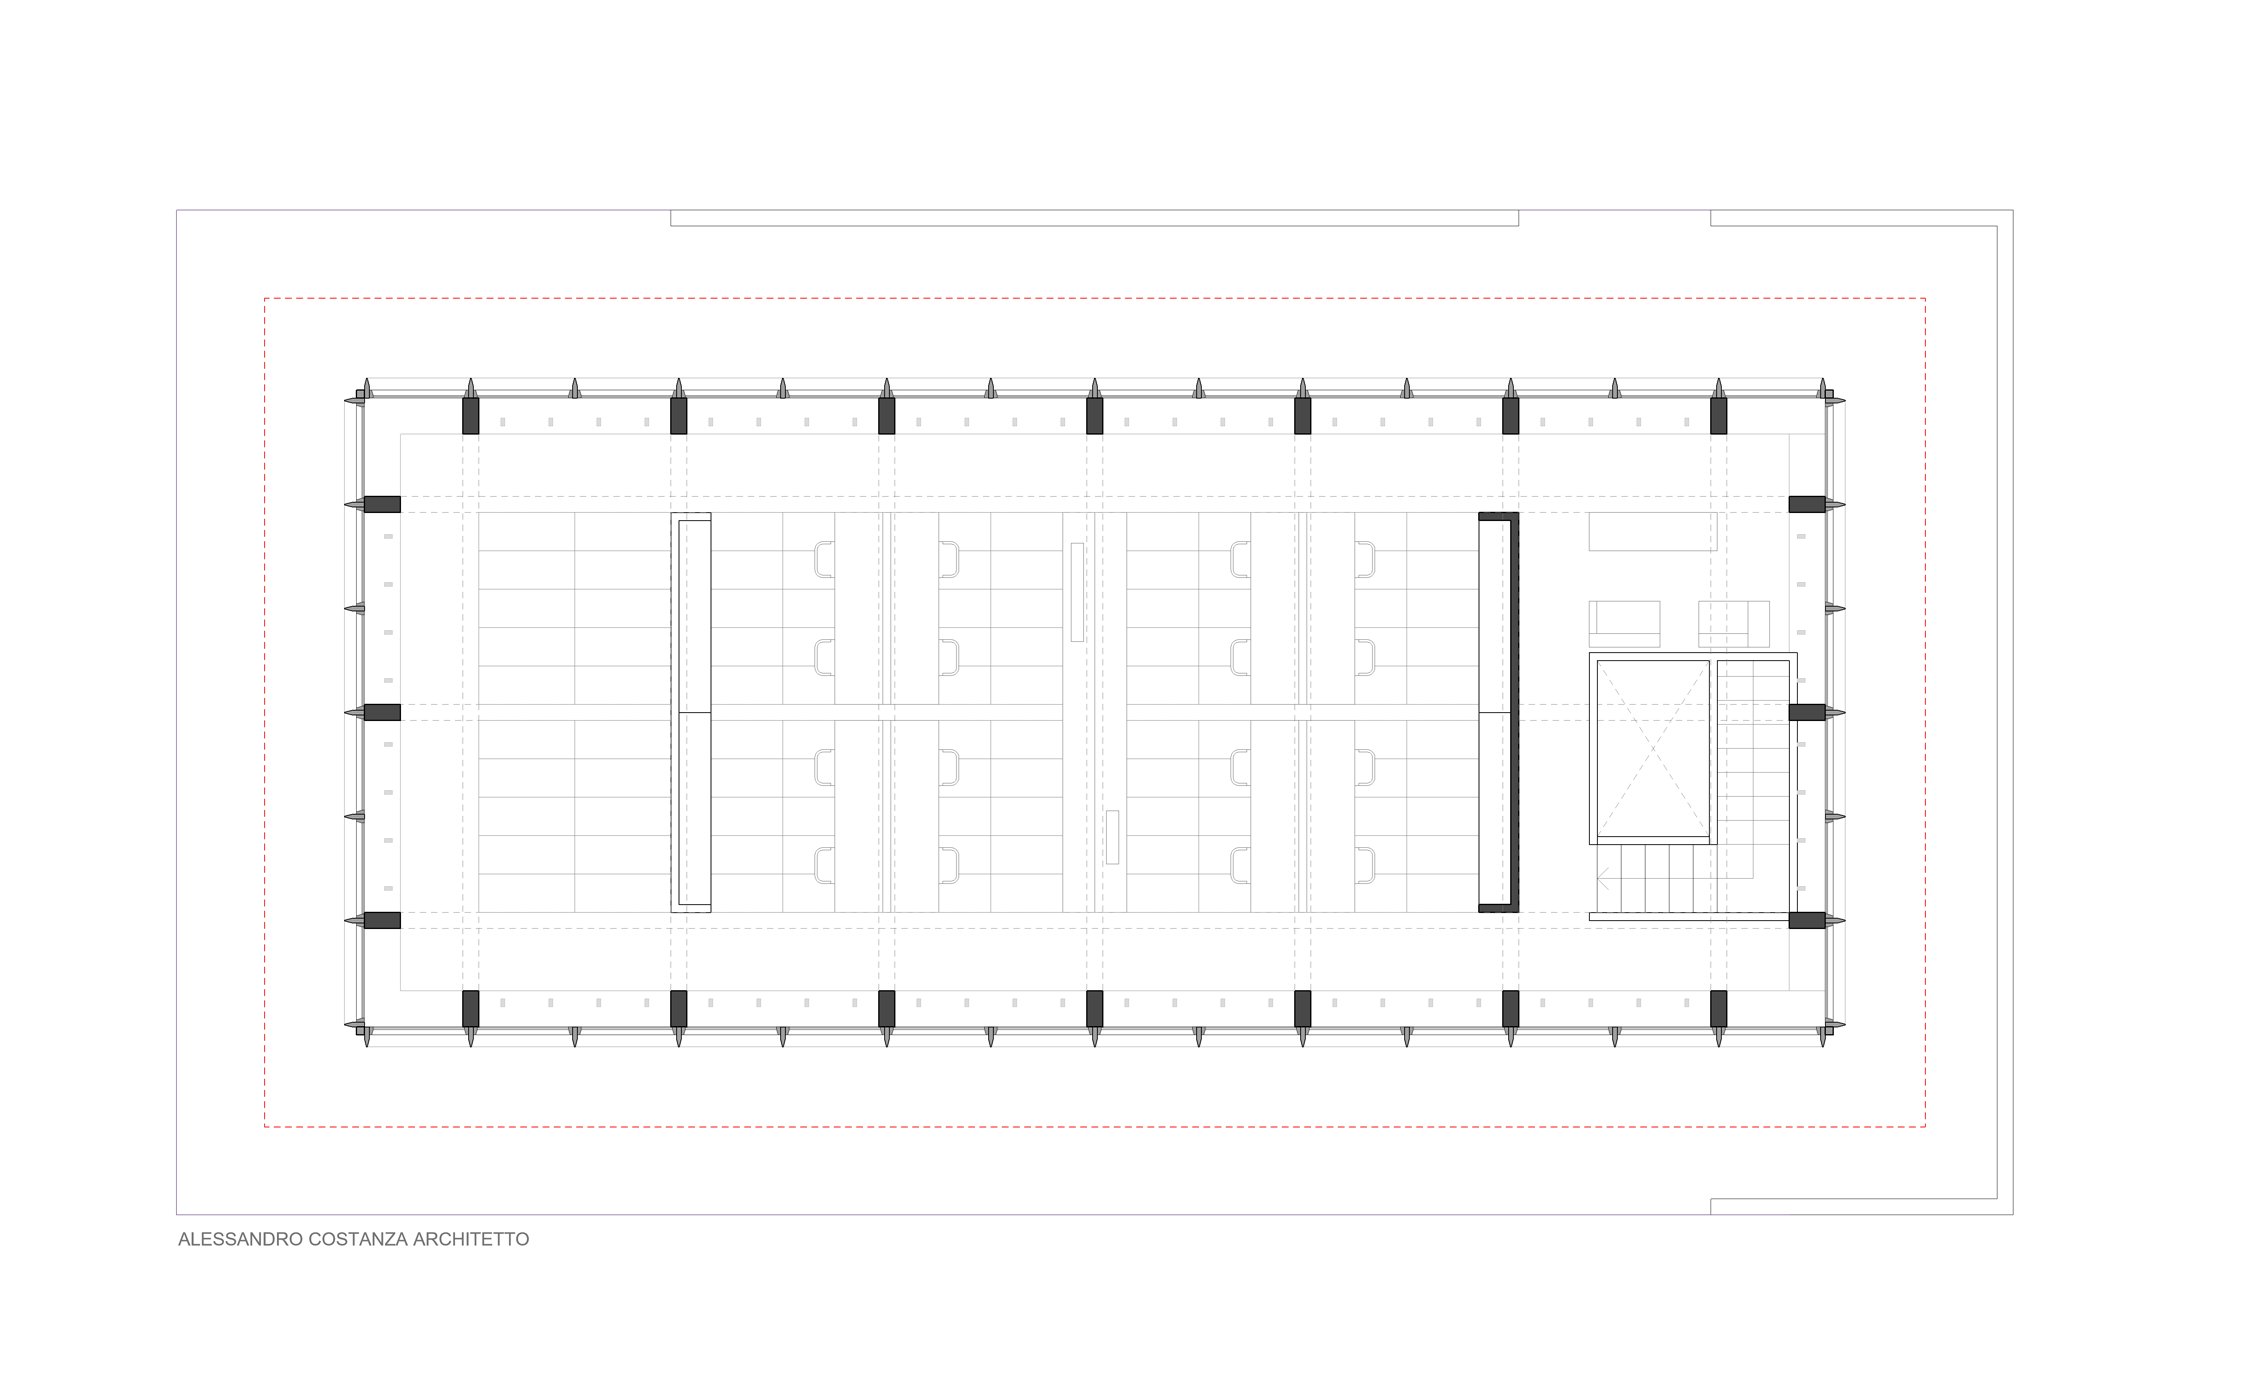 plan with furniture - study for office